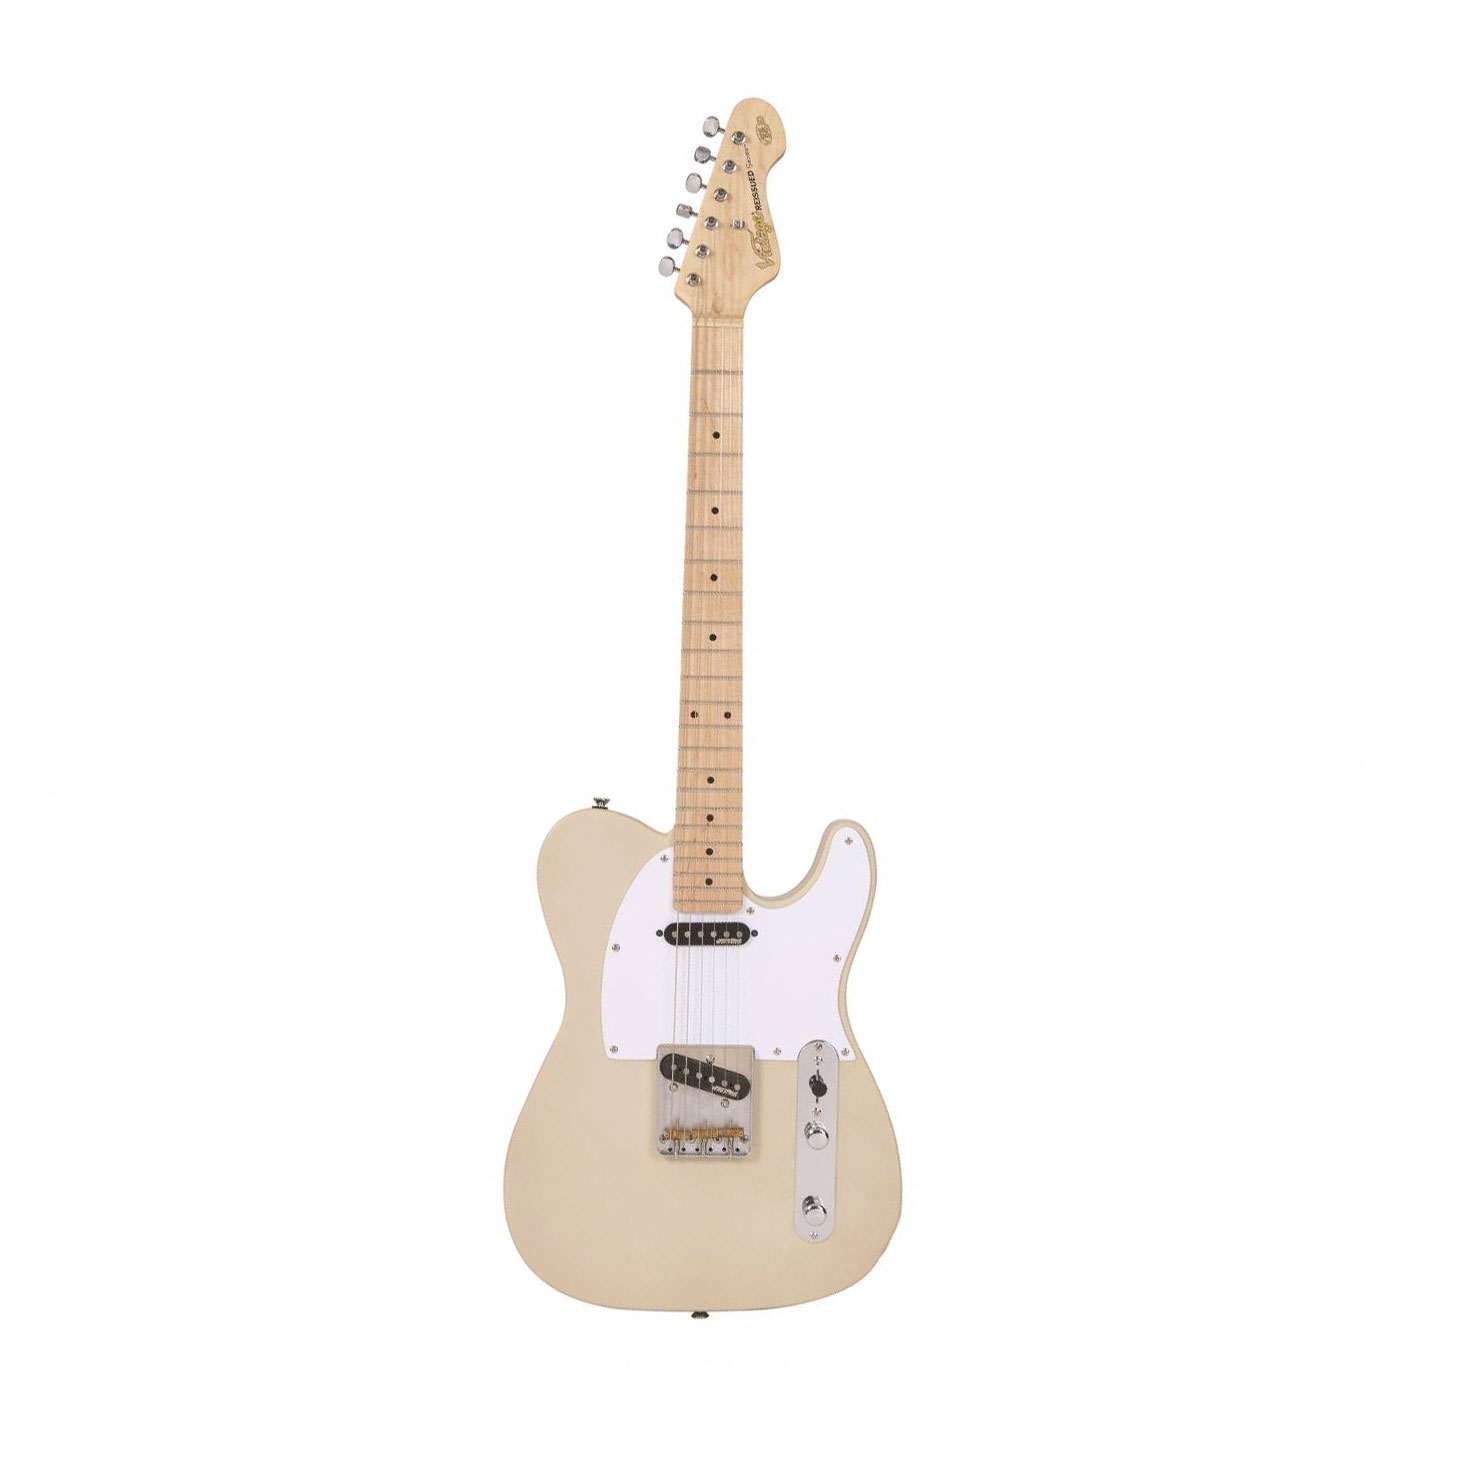 Vintage Guitars V58jdab Ash Blonde